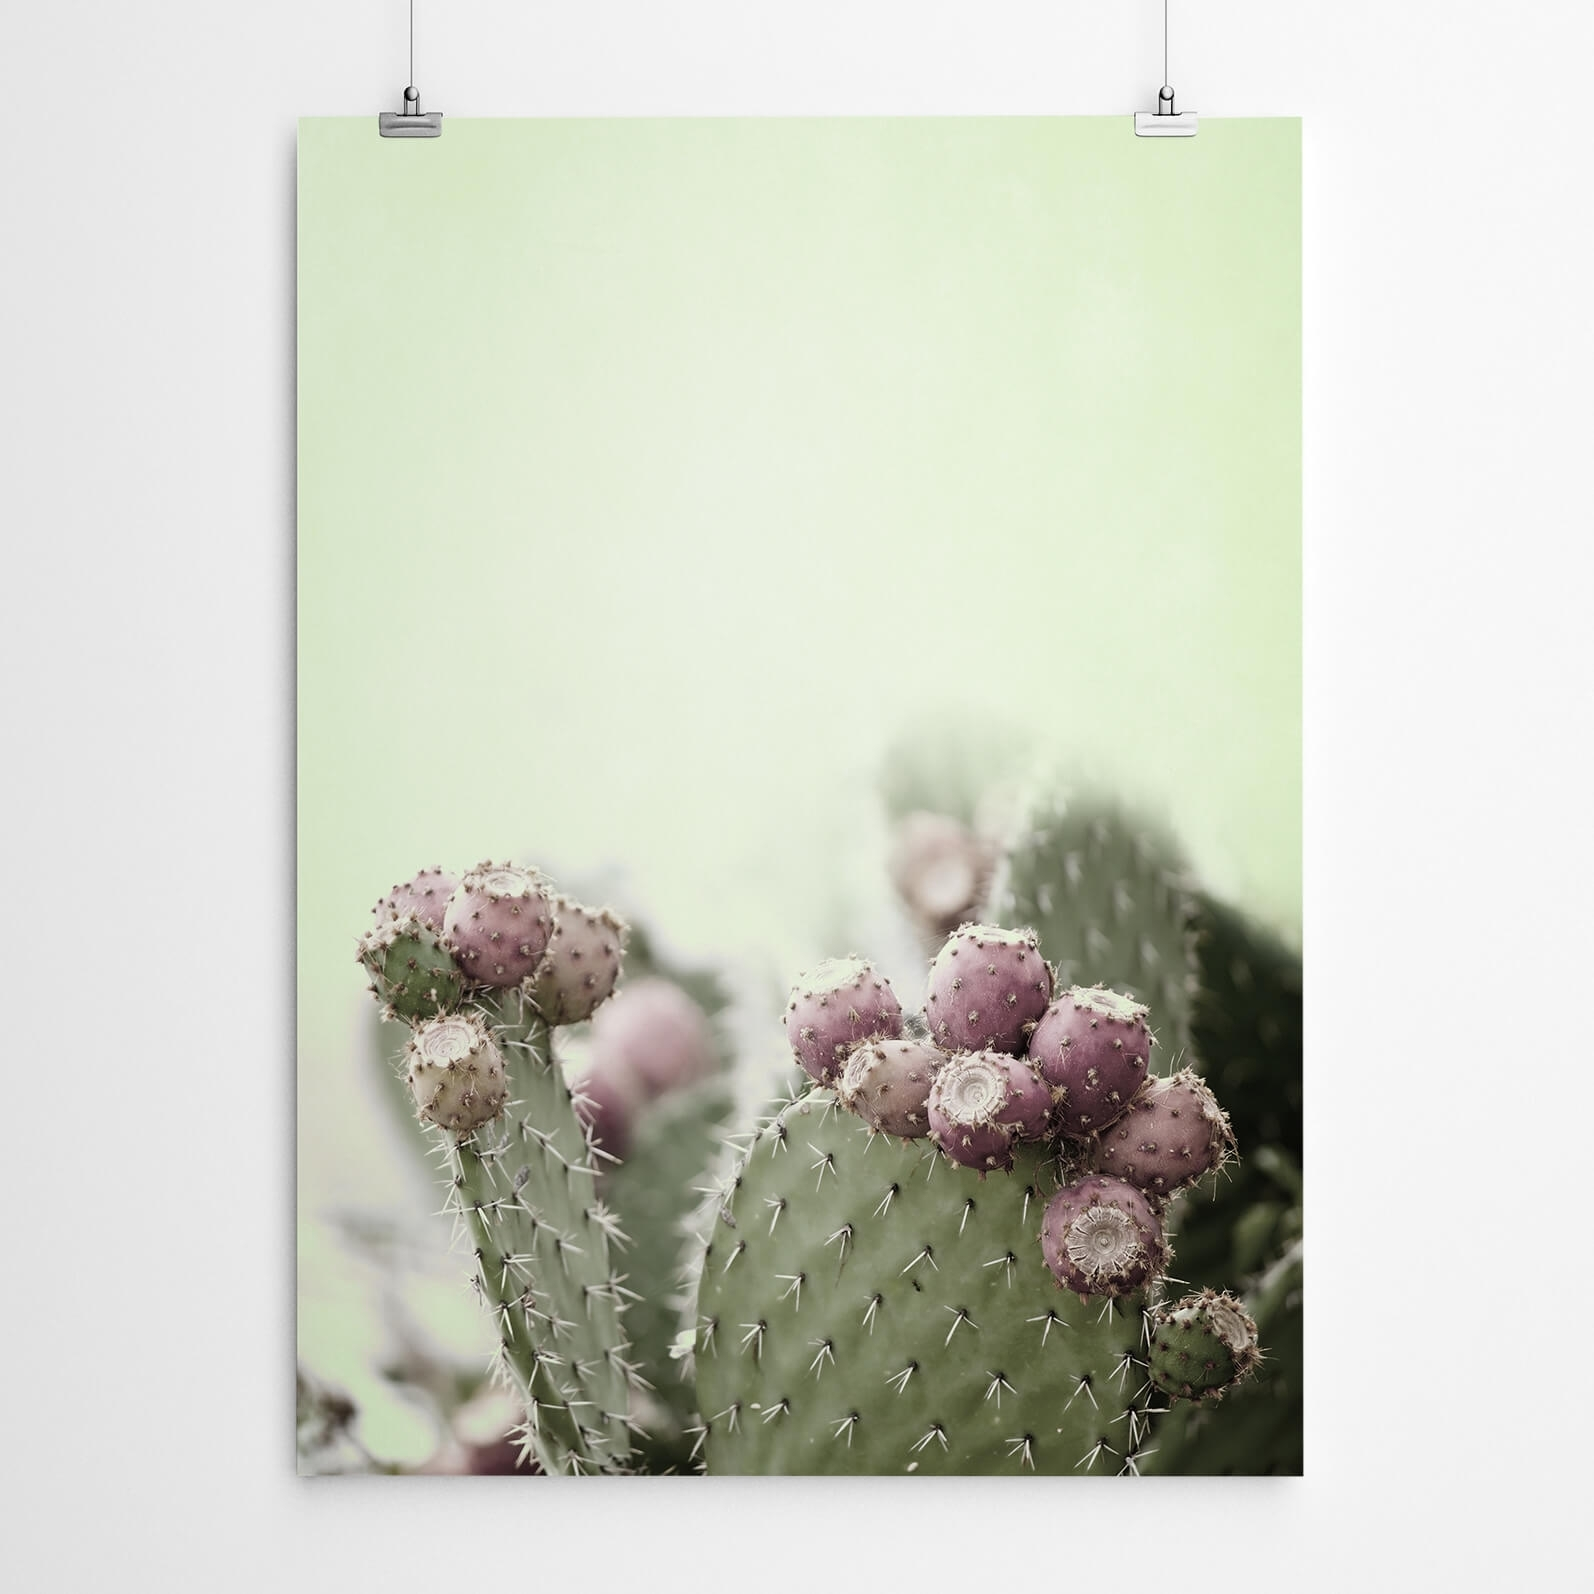 Cactus Wall Art Print | Artworld Art World intended for Cactus Wall Art (Image 9 of 20)